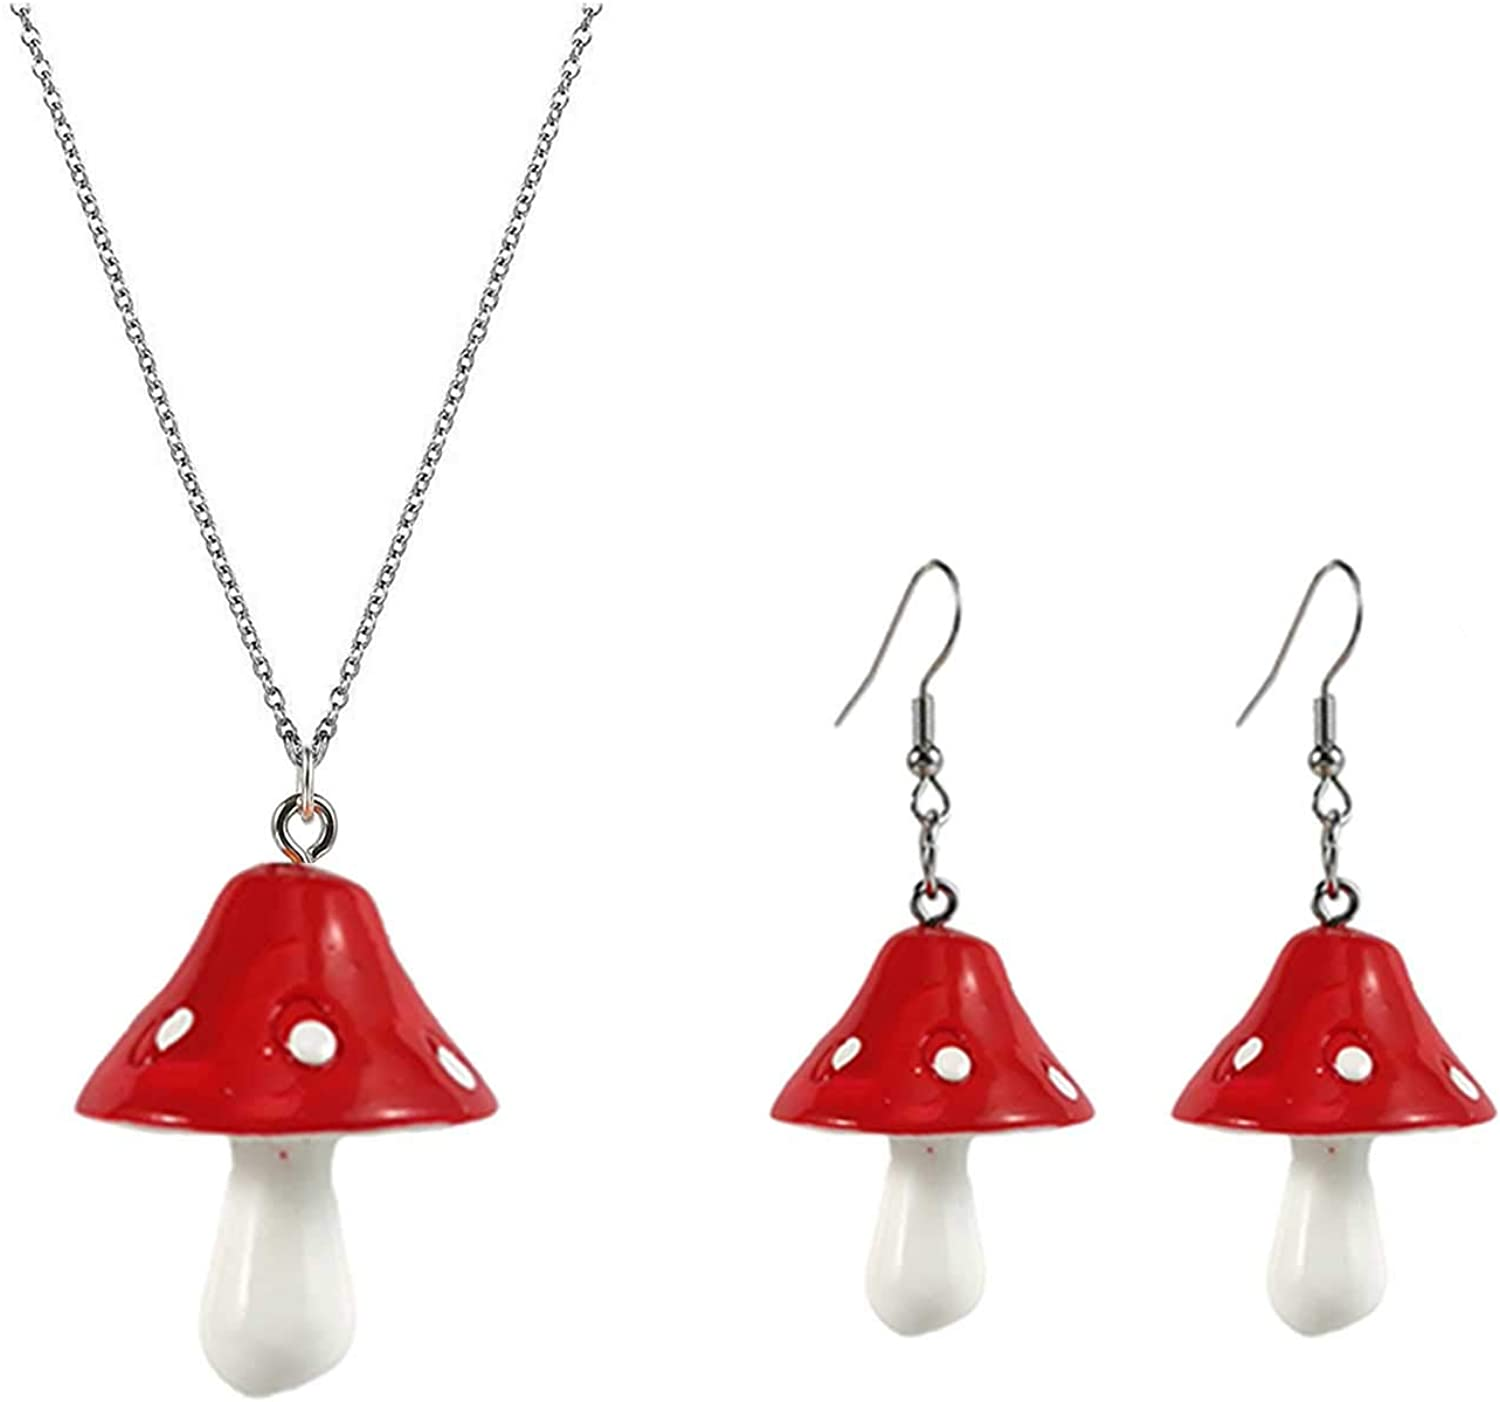 Cute Colorful Mushroom Dangling Earrings Necklace Set Handmade Gummy Mushrooms Necklaces Rainbow Colored 3D Vegetables Jewelry Chains for Women Girls Daughters